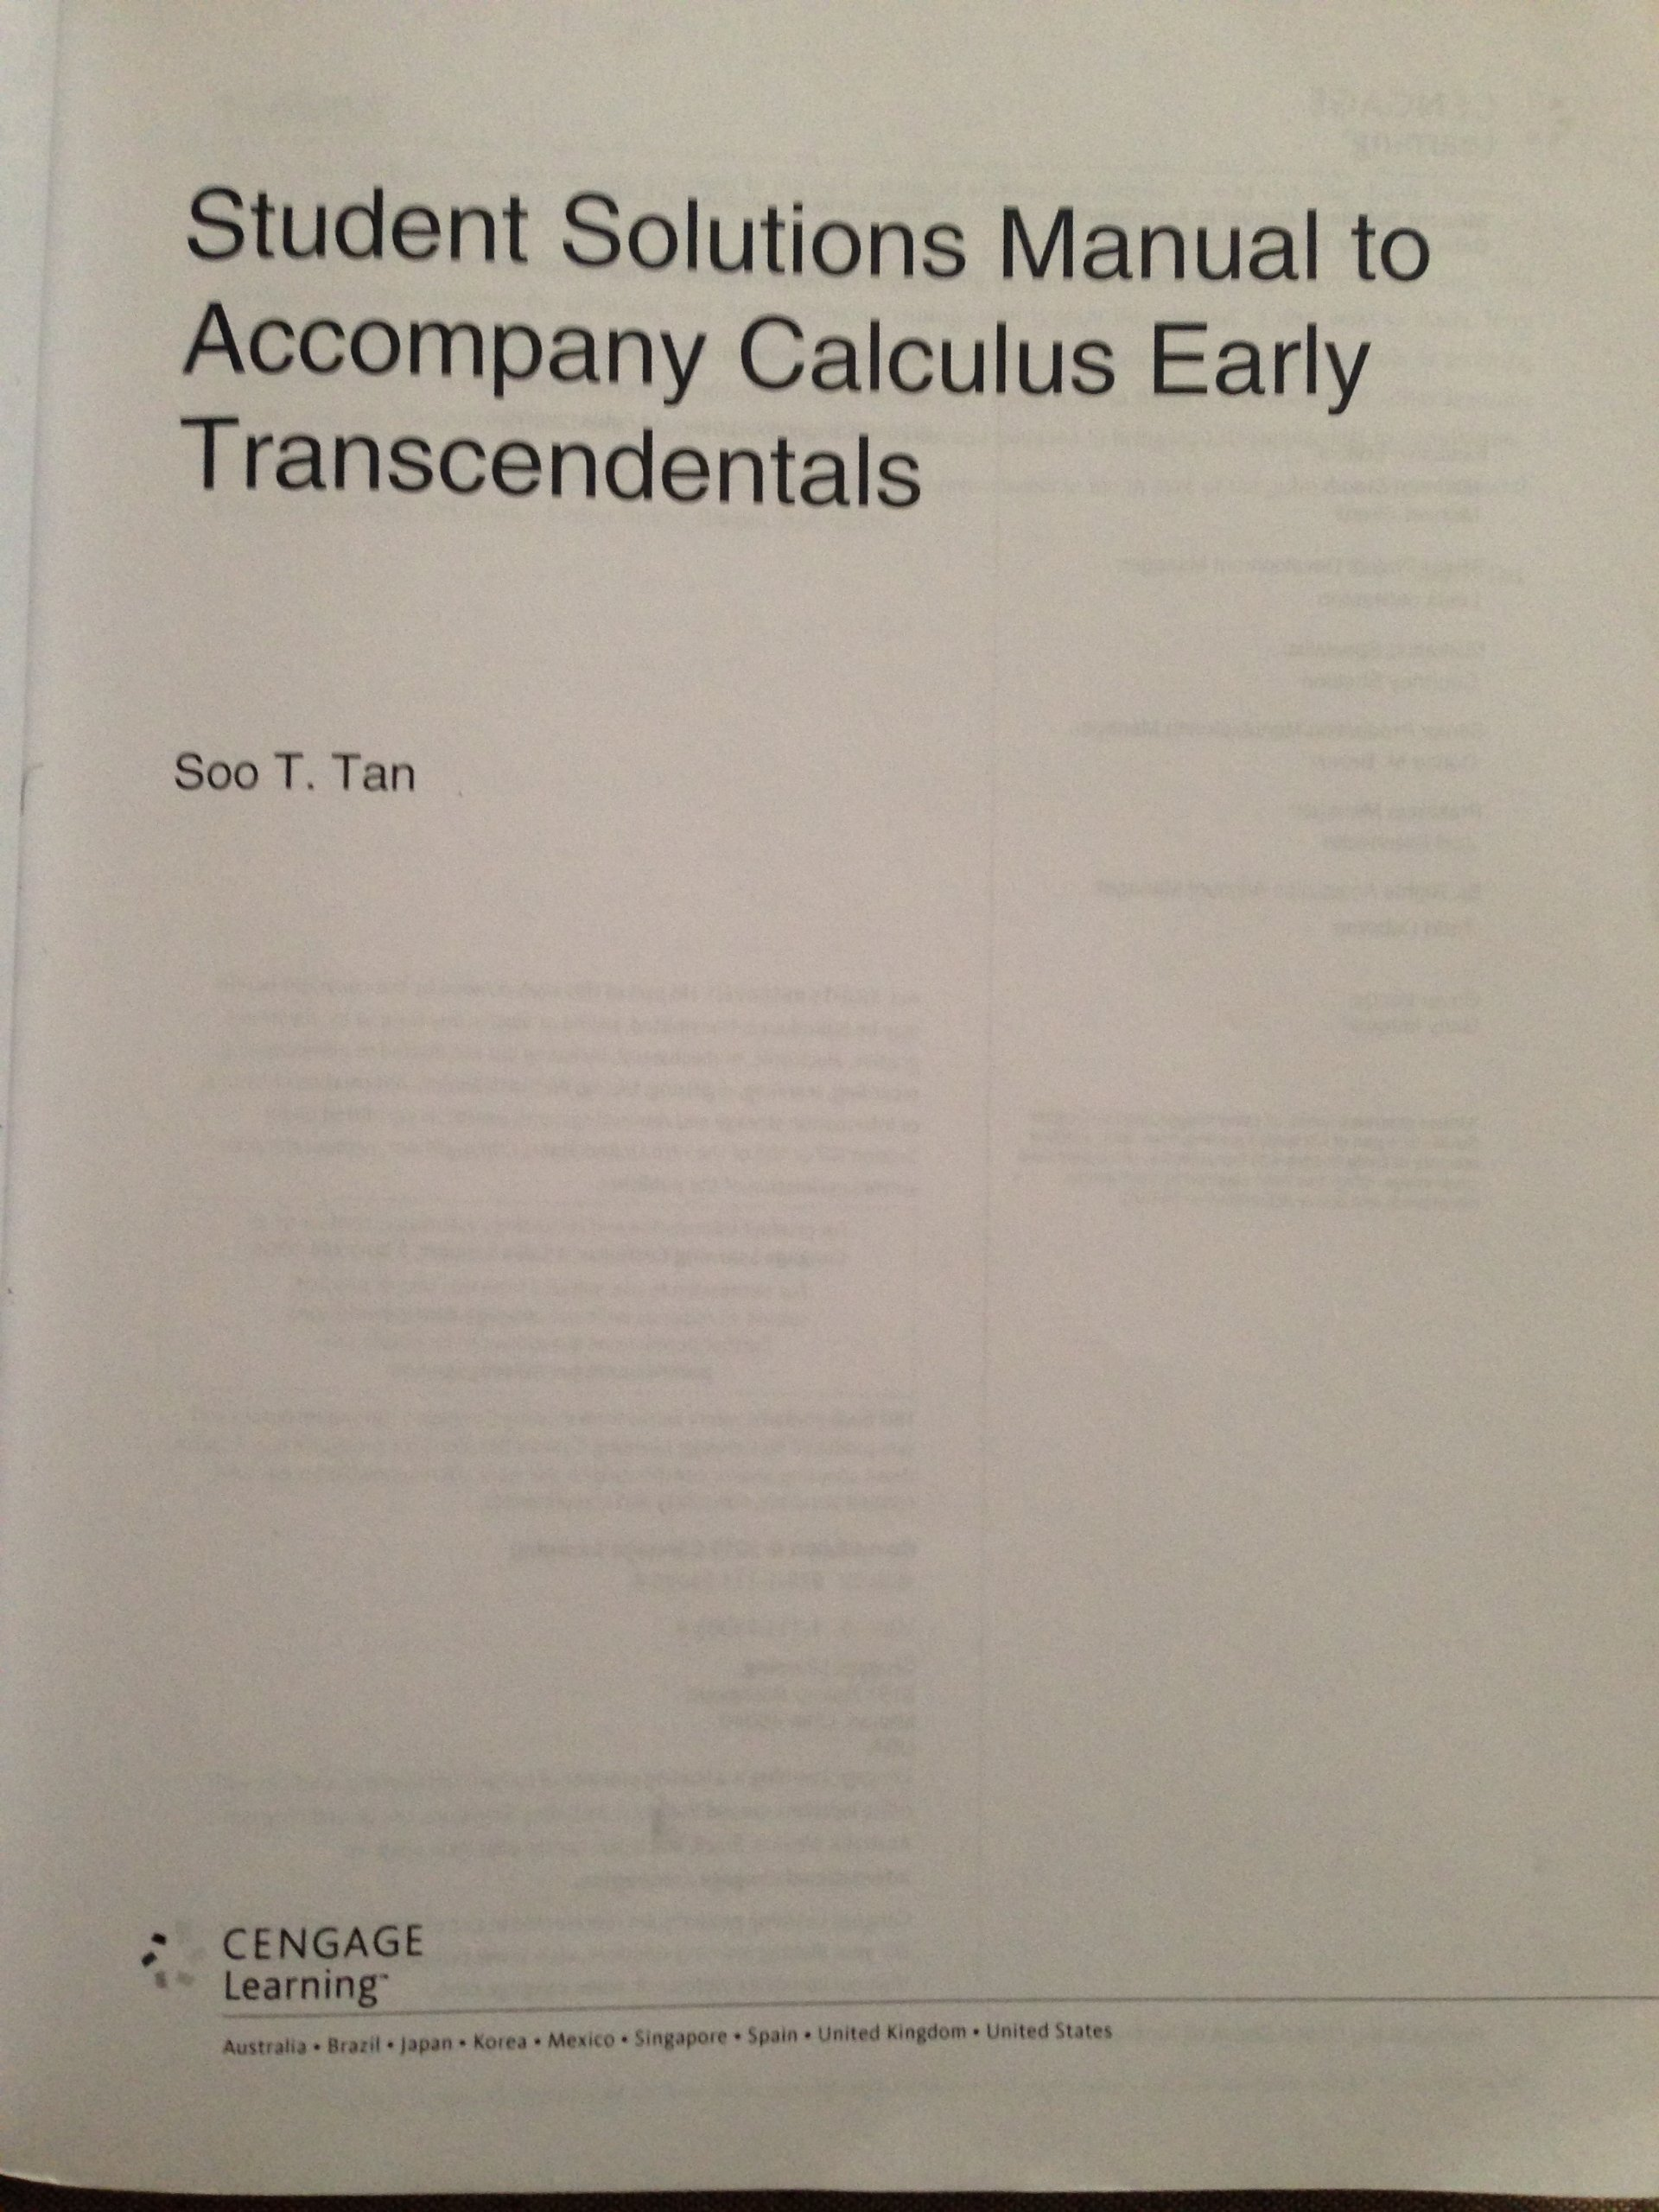 Student Solutions Manual to Accompany Calculus: Early Transcendentals: Soo  T. Tan: 9781111740658: Amazon.com: Books